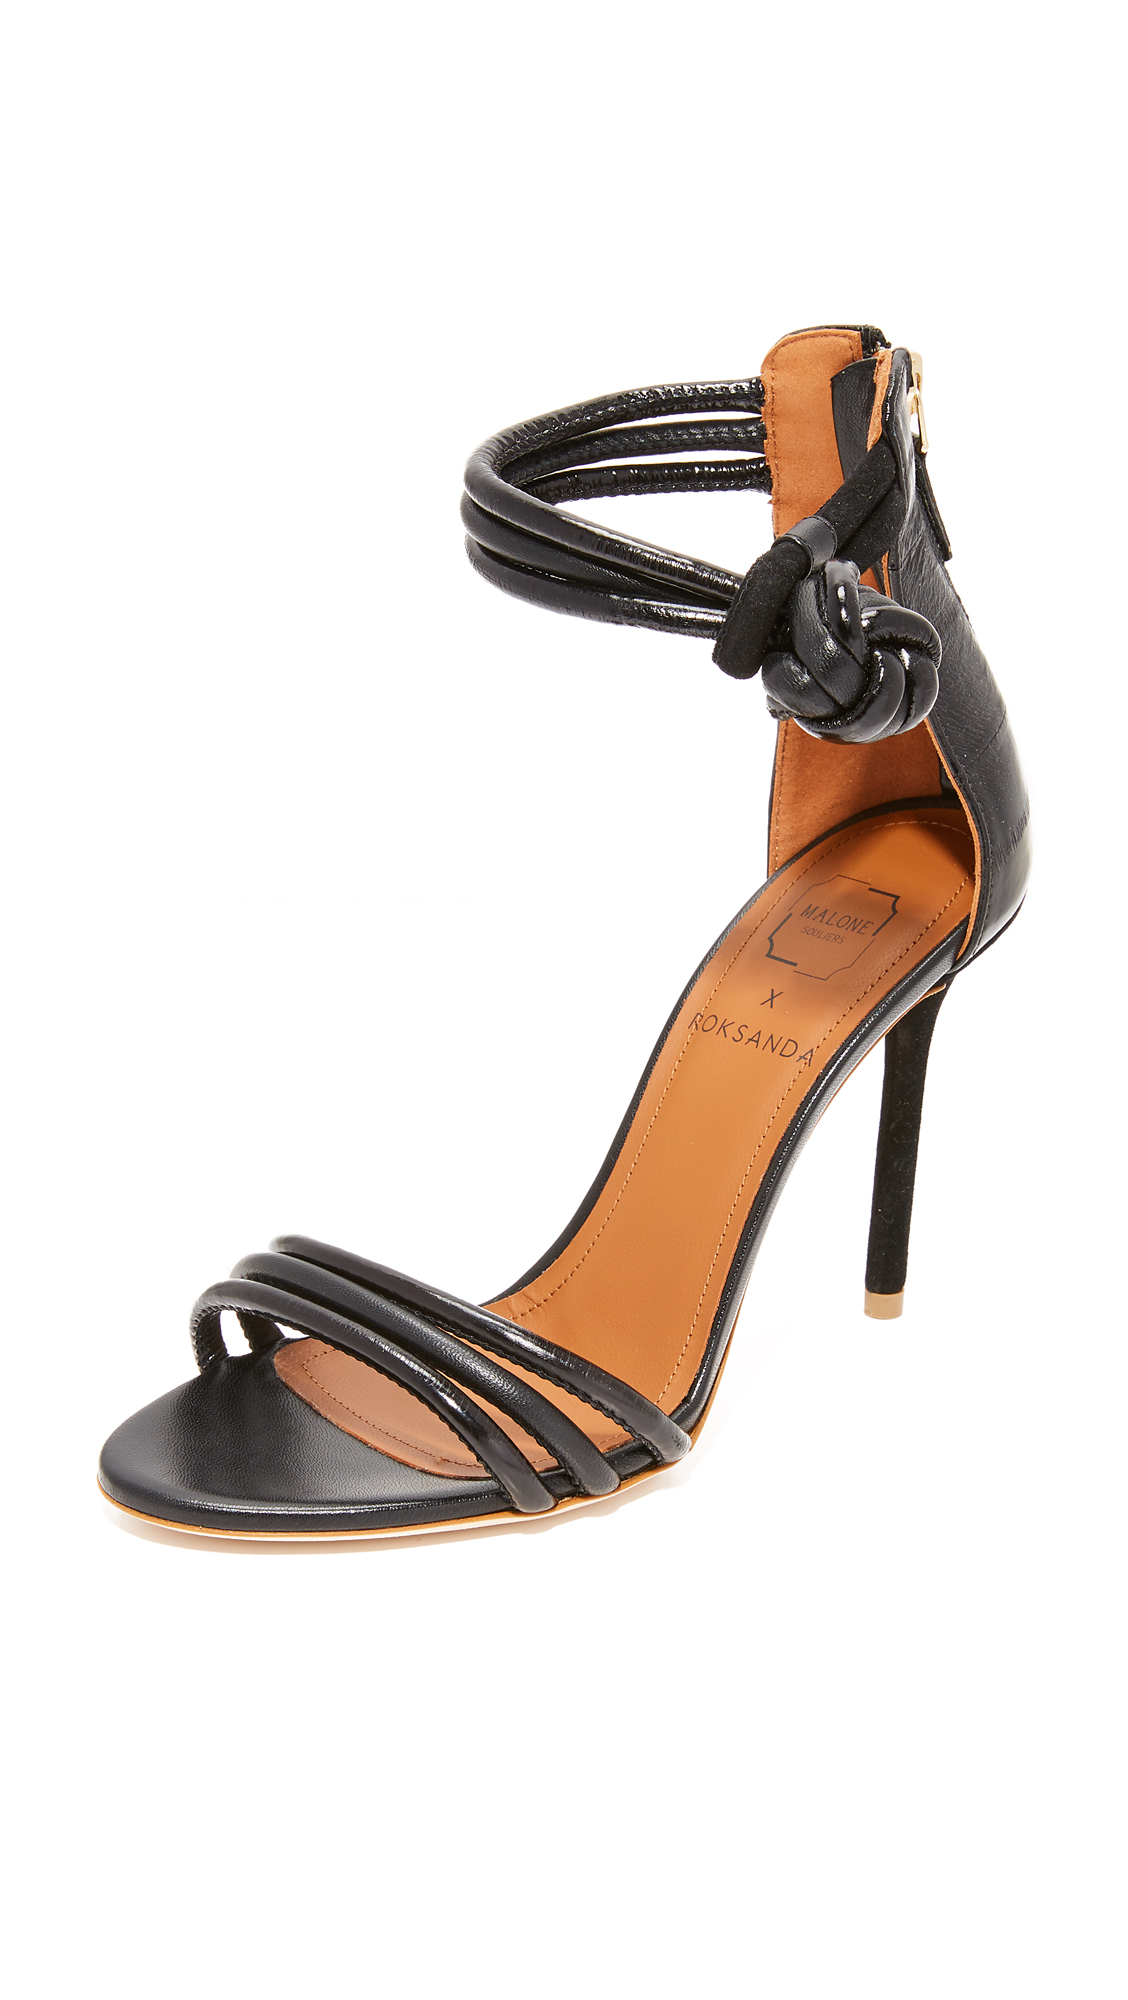 Malone Souliers Ethel Sandals - Black